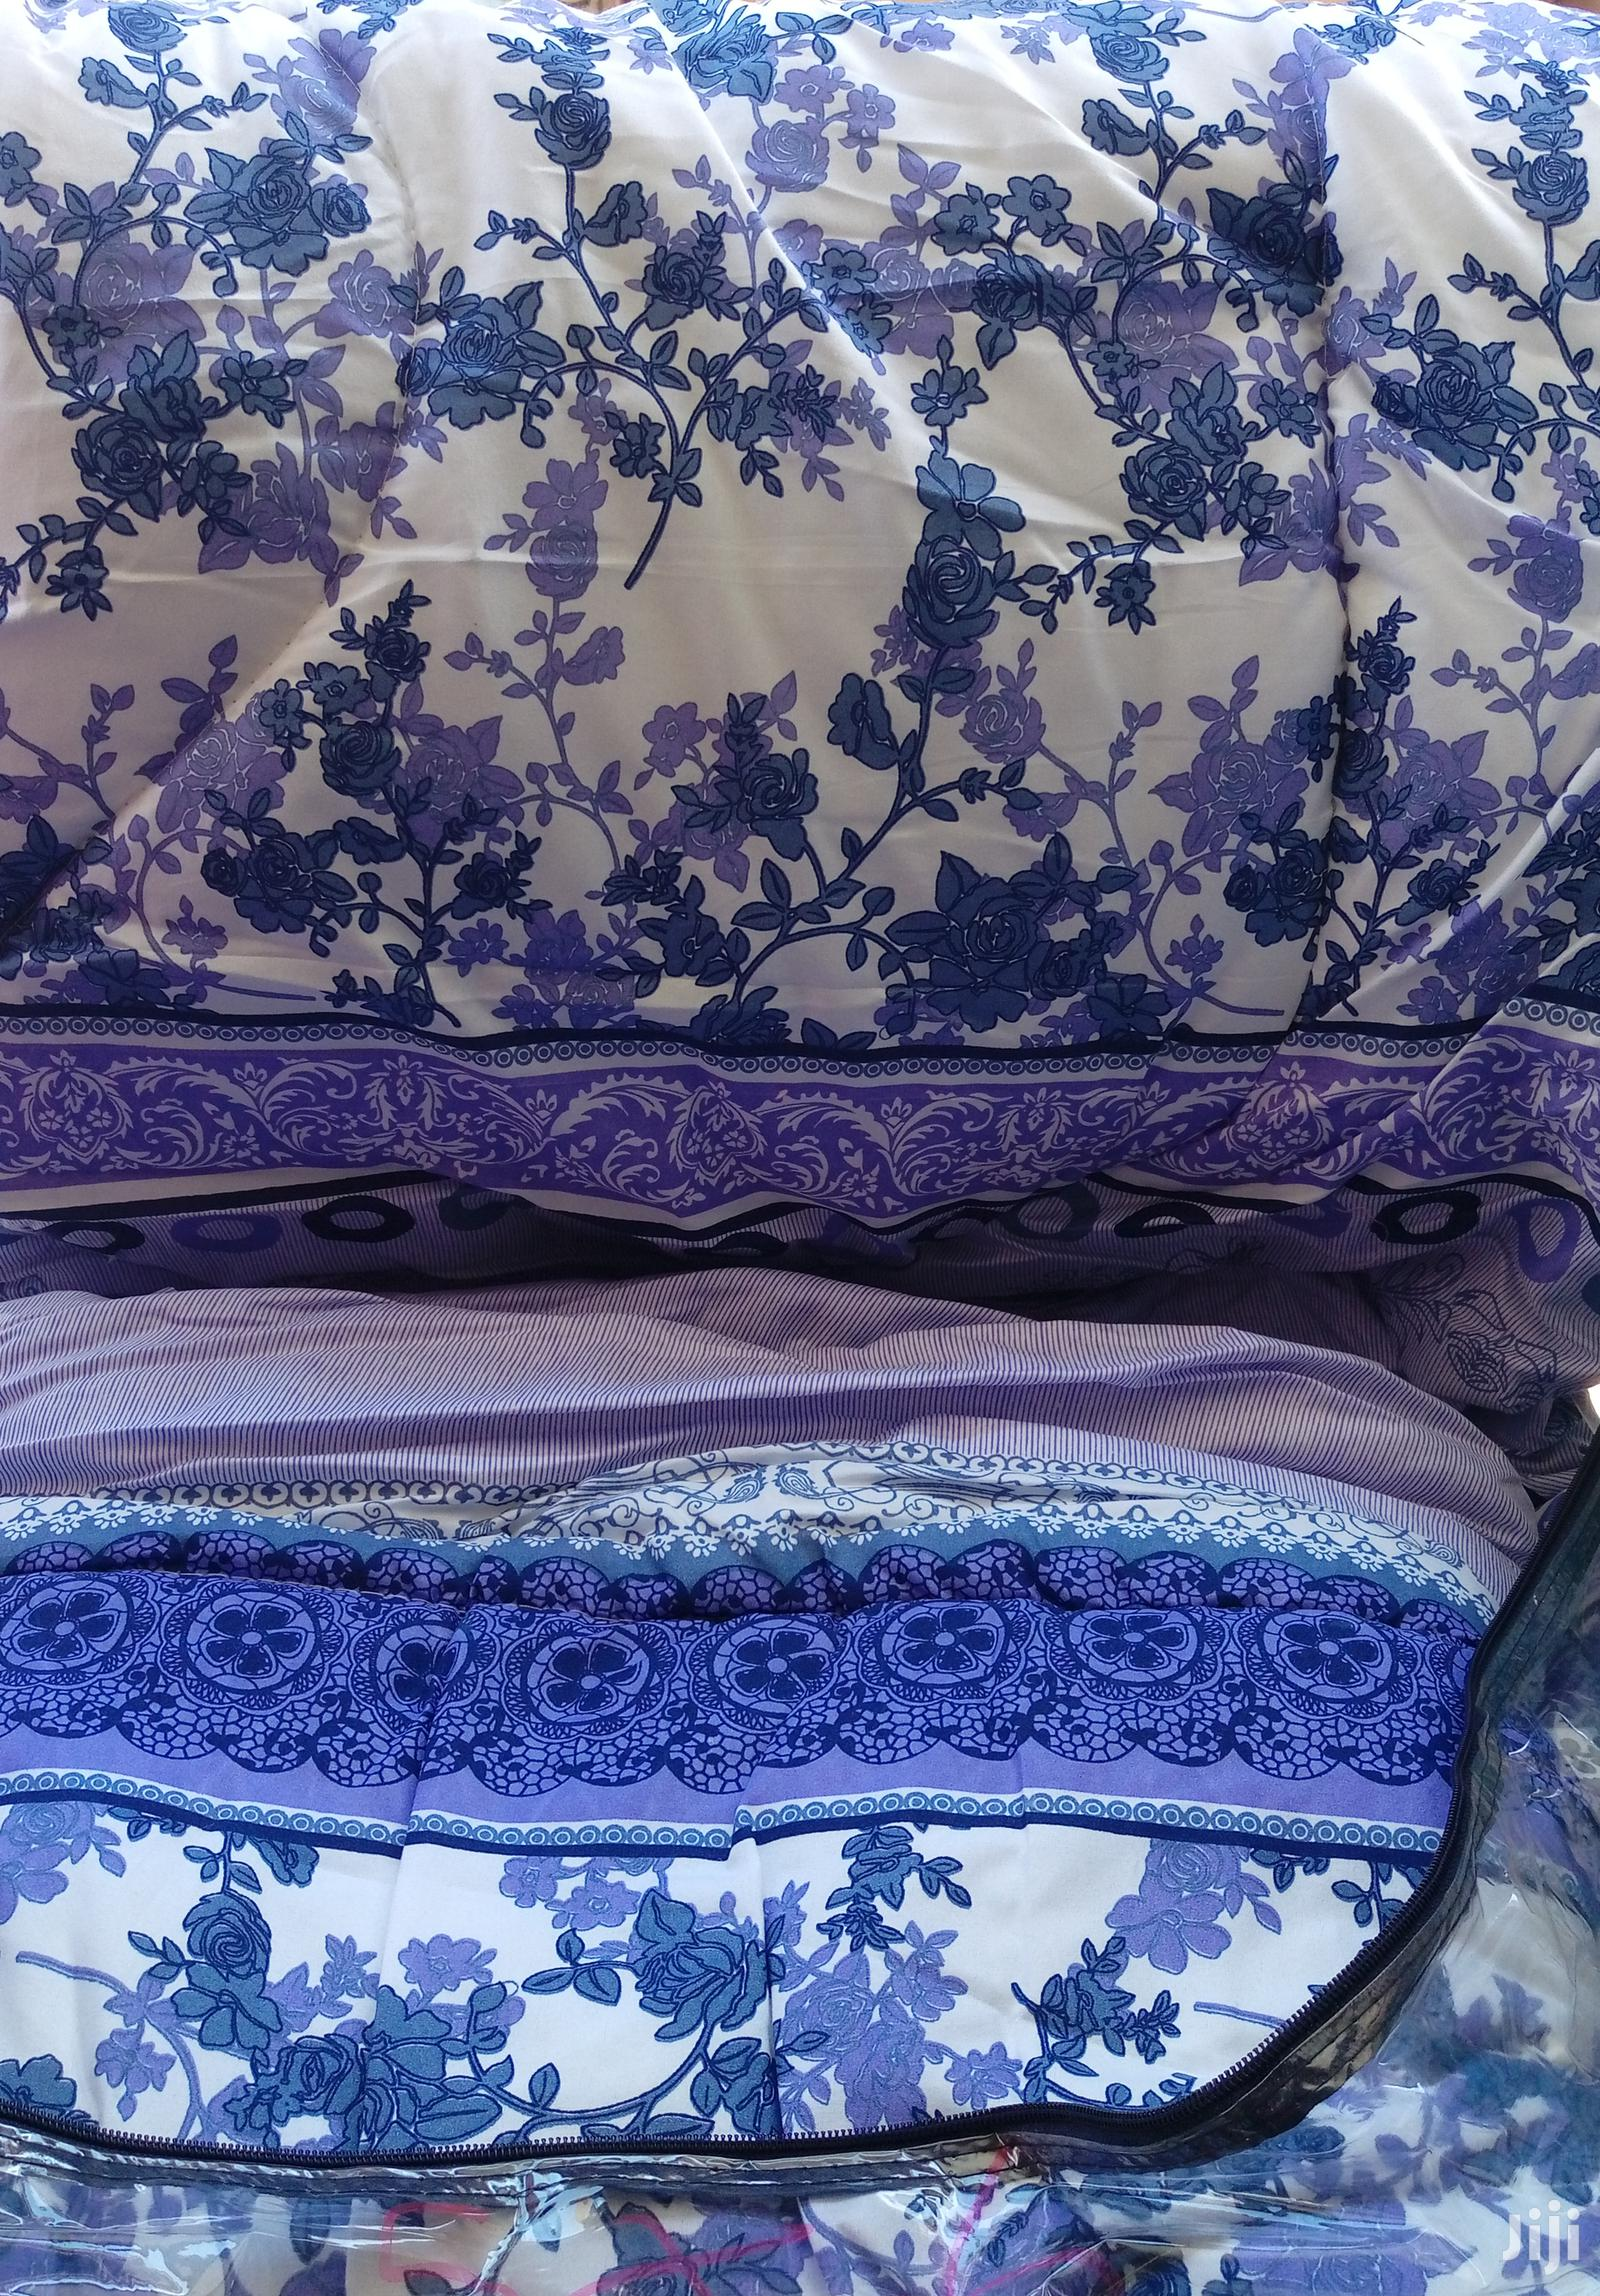 5*6 Cotton Duvets With Two Pillow Cases And A Matching Bedsheet